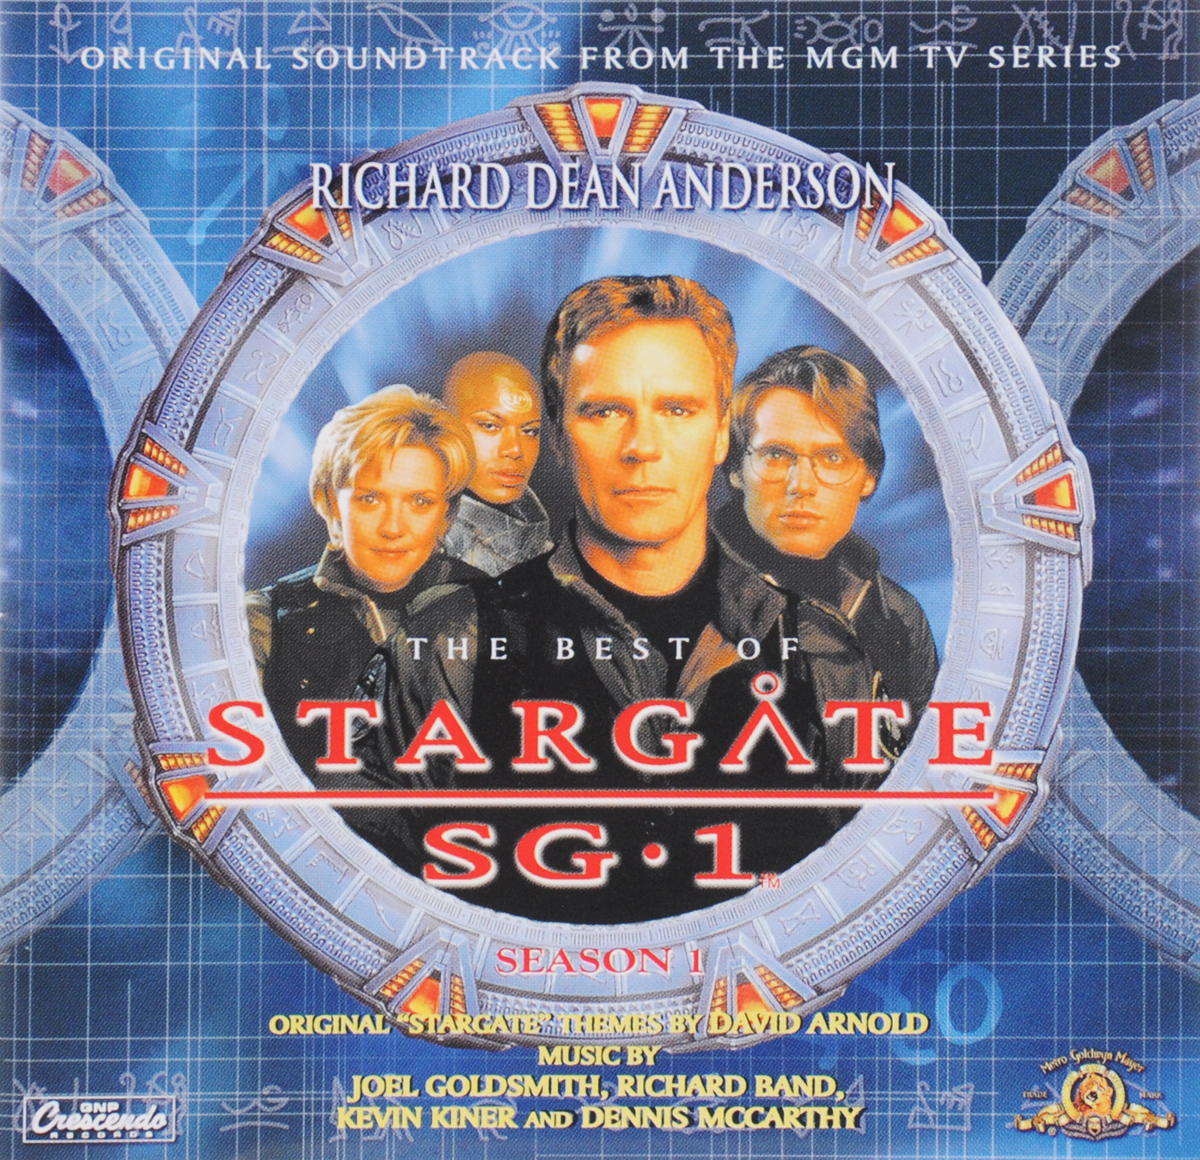 The Best Of Stargate SG-1. Season 1. Original Soundtrack From The MGM TV Series